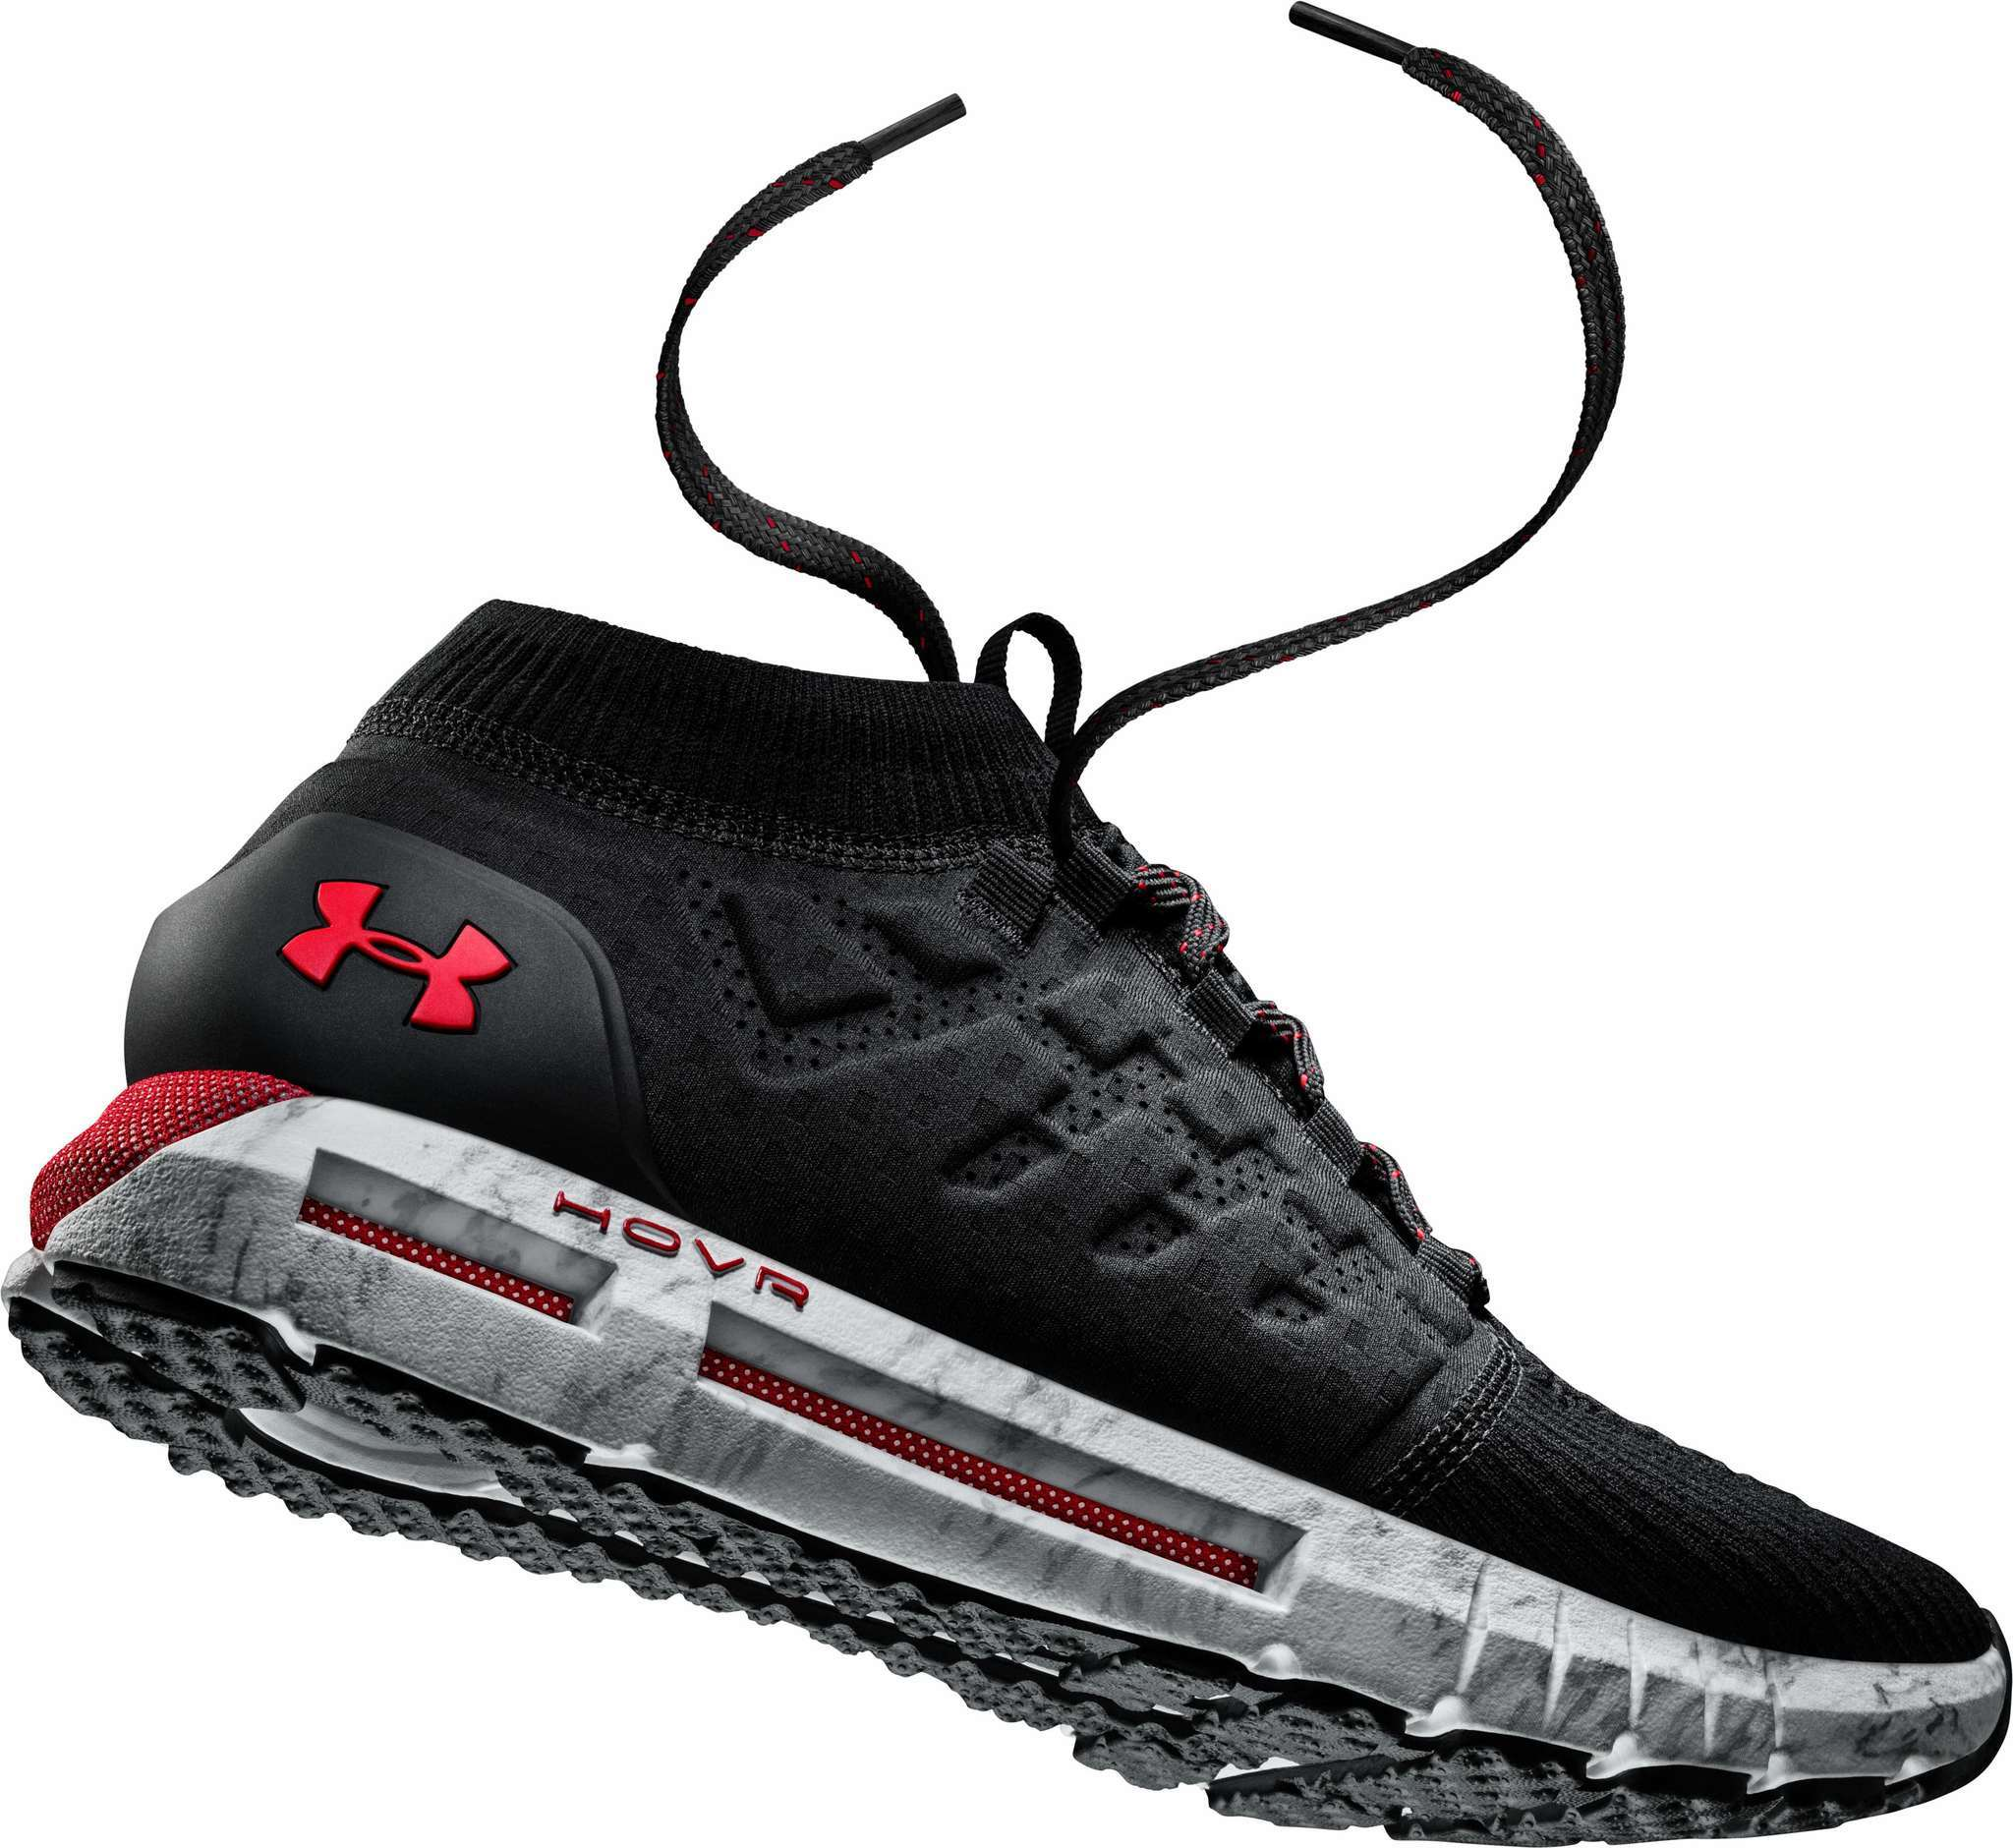 UnderArmour Charged-up smart running shoe.